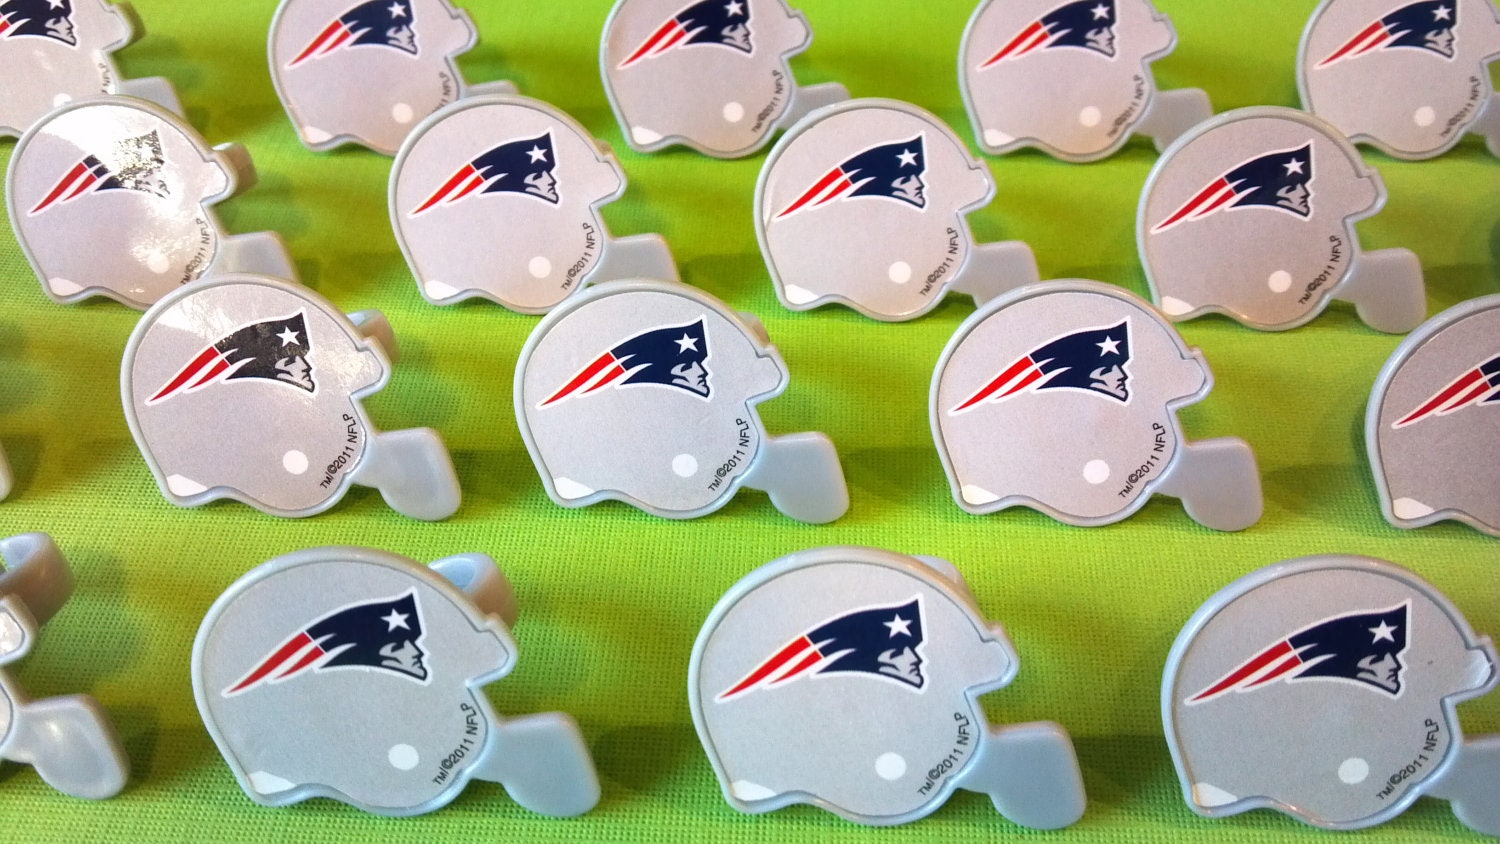 24 New England PATRIOTS NFL helmet cupcake by AisforApronStrings